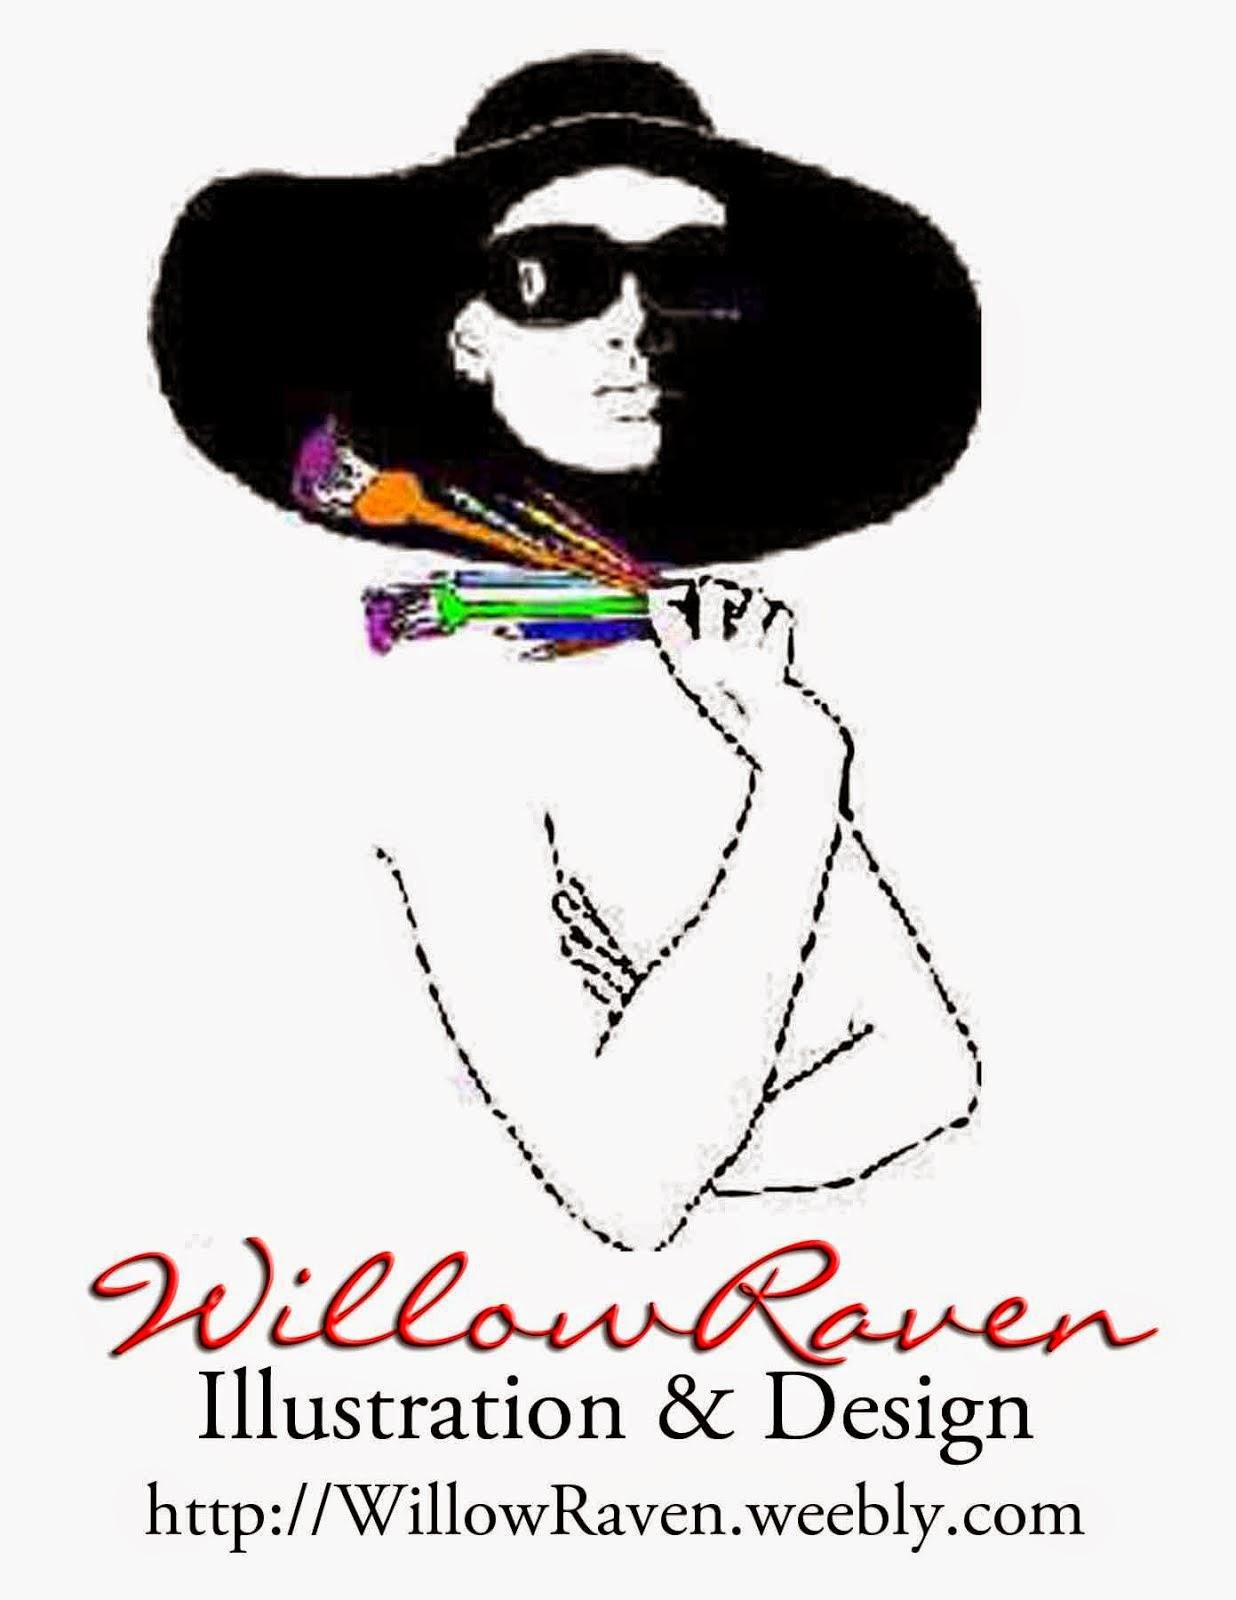 WillowRaven's website